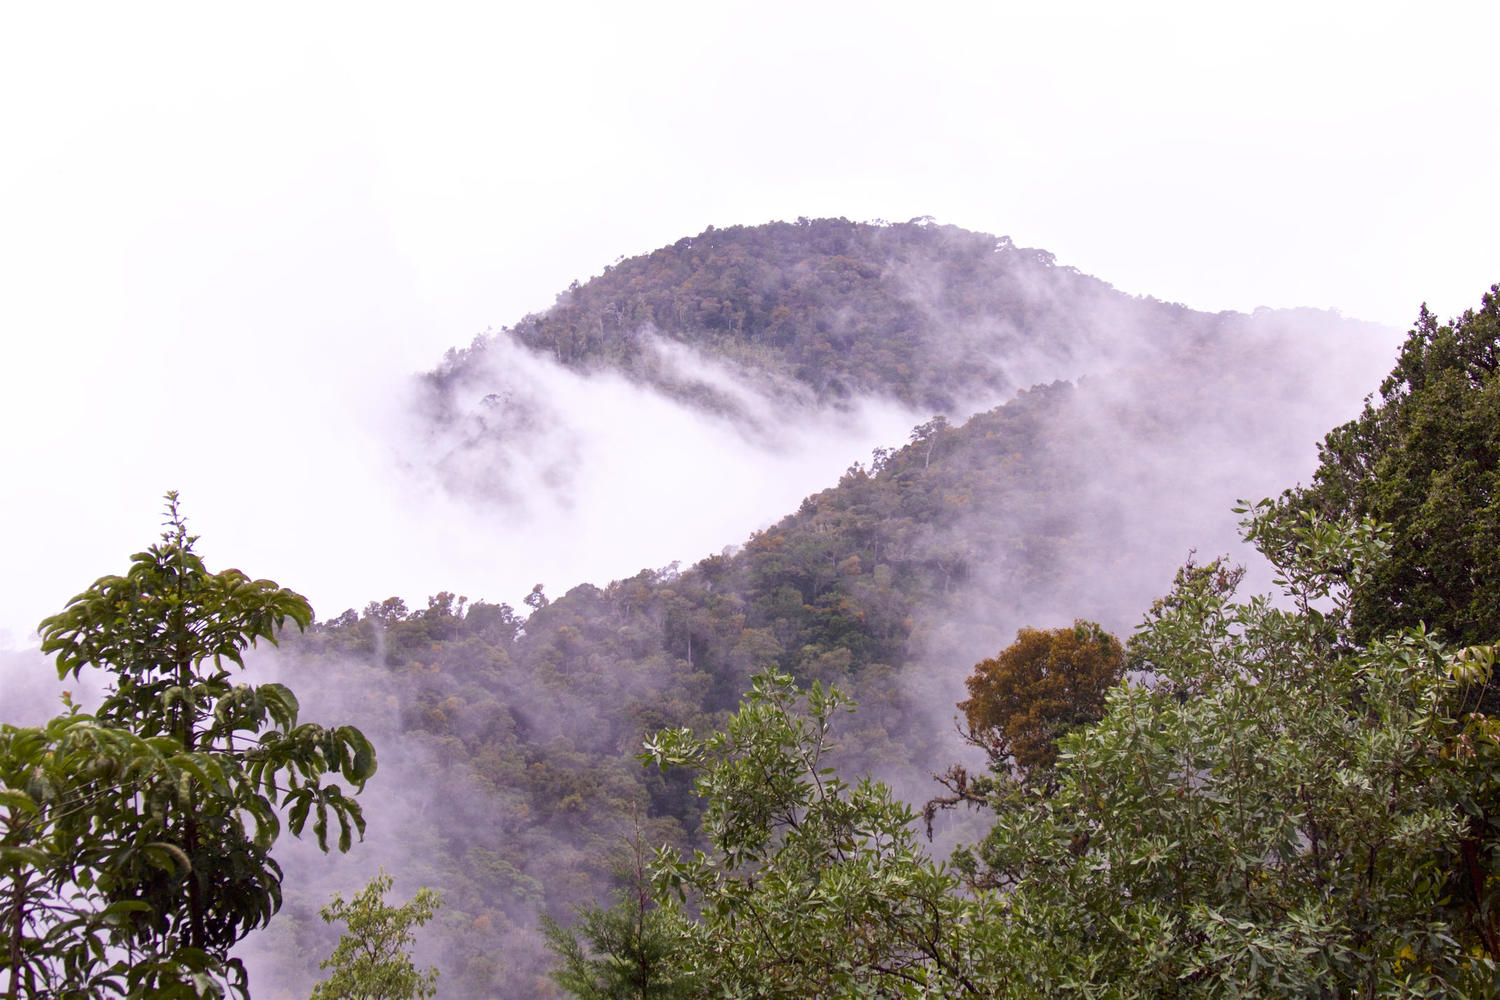 Mists drift across mountains and trees in San Gerardo